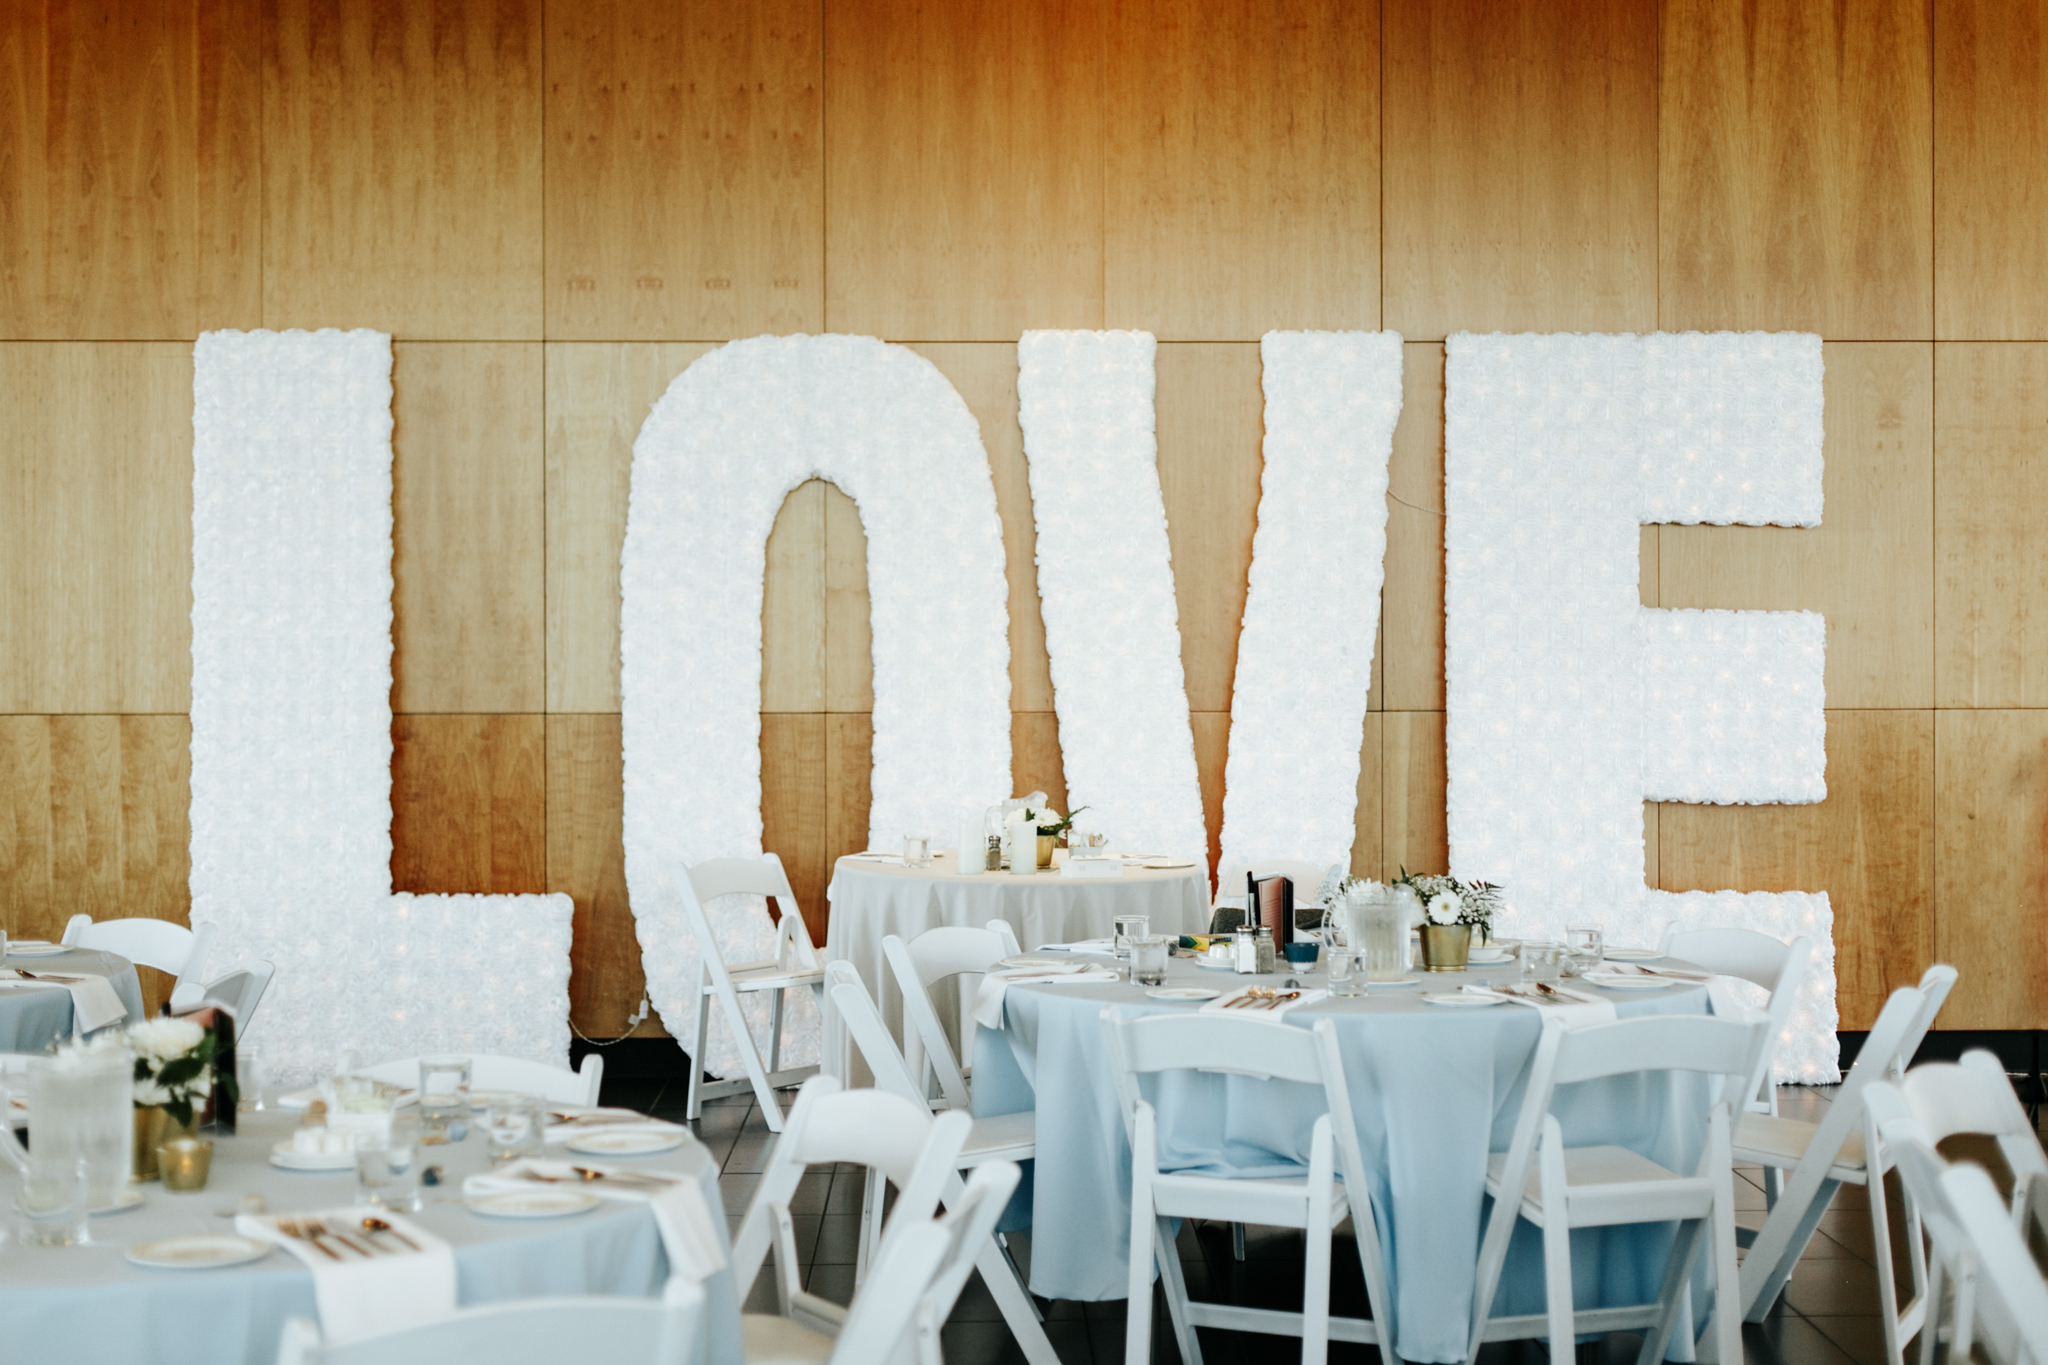 lethbridge-wedding-photographer-love-and-be-loved-photography-trent-danielle-galt-reception-picture-image-photo-162.jpg